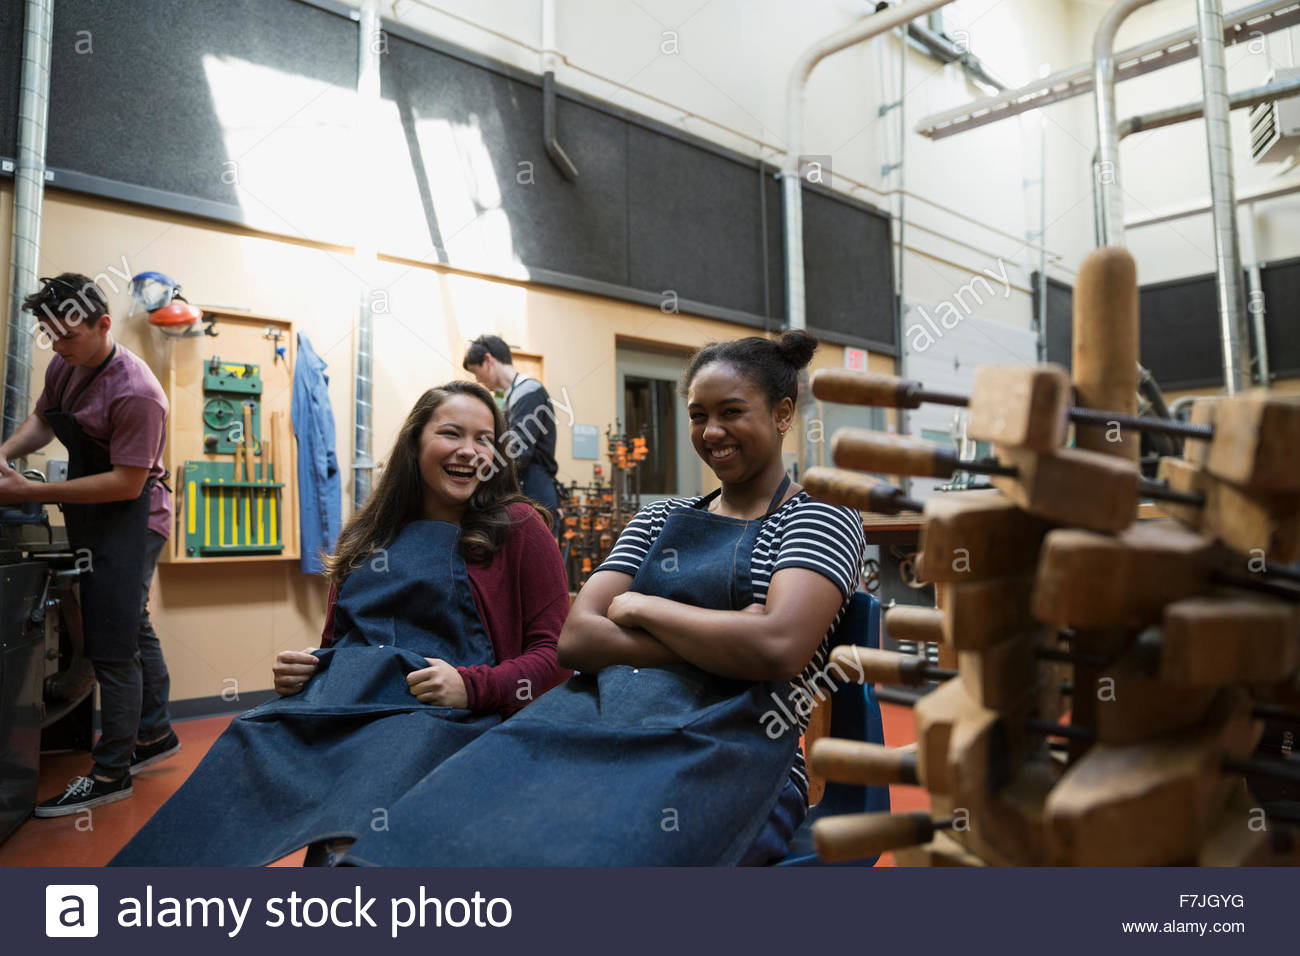 Female high school students laughing in workshop Stock Photo